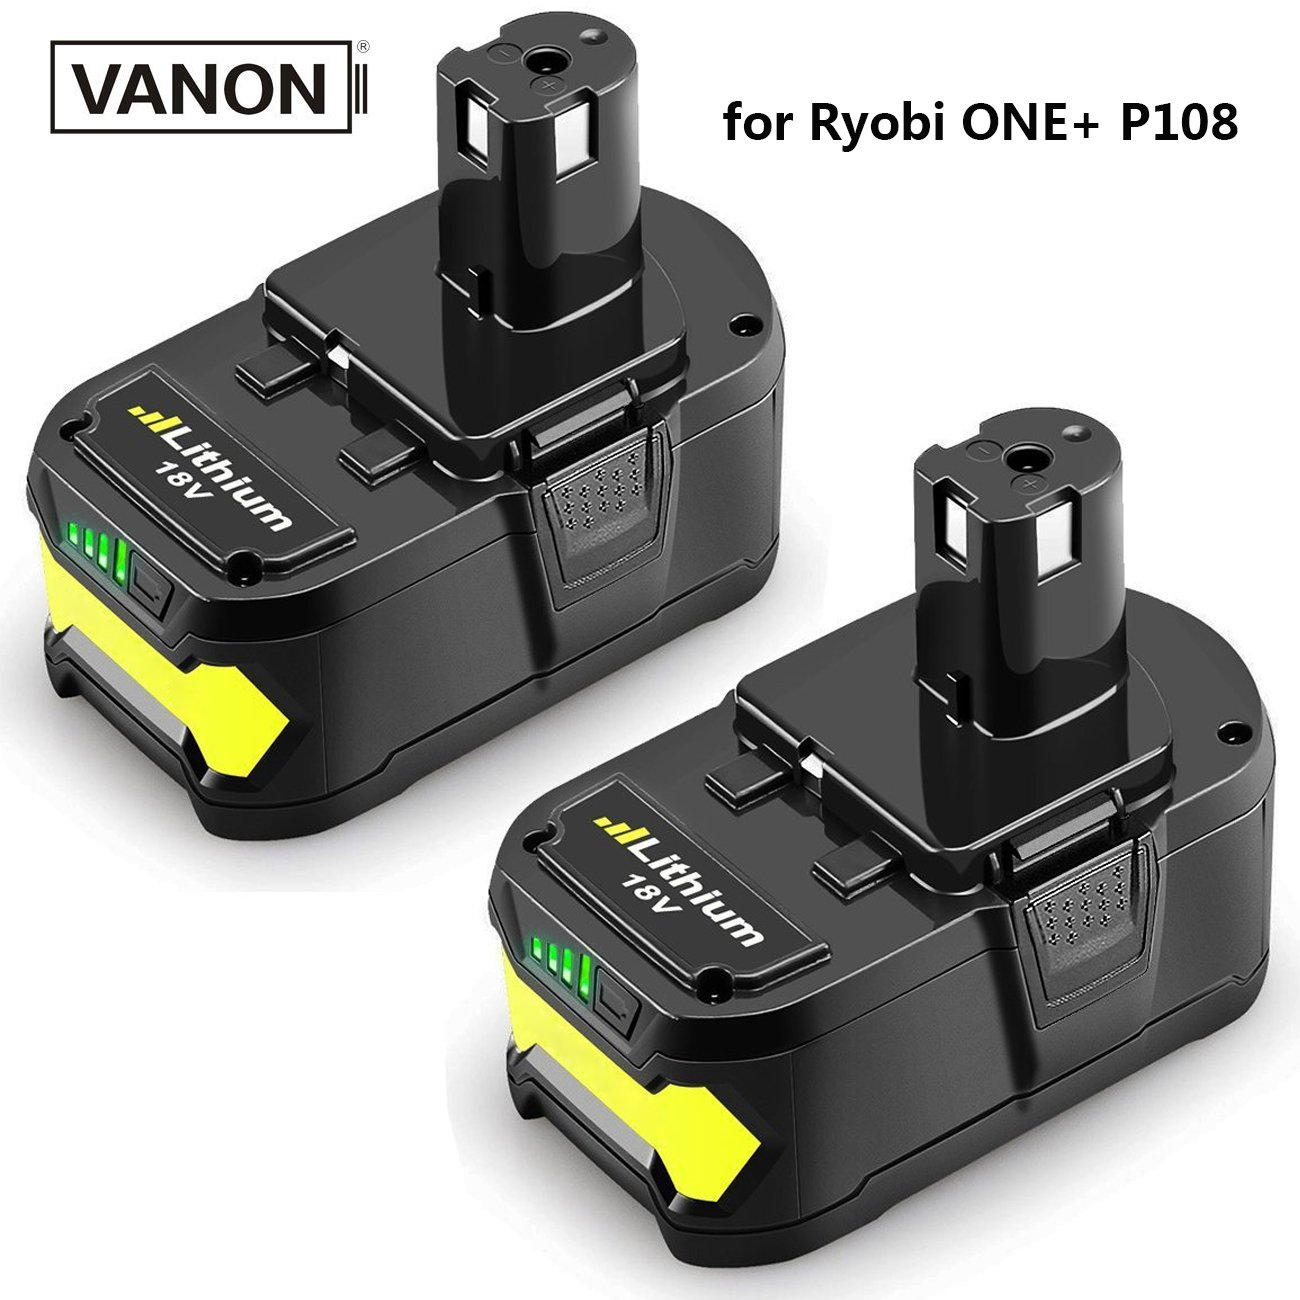 18V 6.0ah Lithium Ion Battery for Ryobi ONE+ P104 P105 P102 P103 P107 P108 P507 BPL-1815 BPL-1820G BPL18151 BPL1820 Cordless Power Tools (2-Pack)